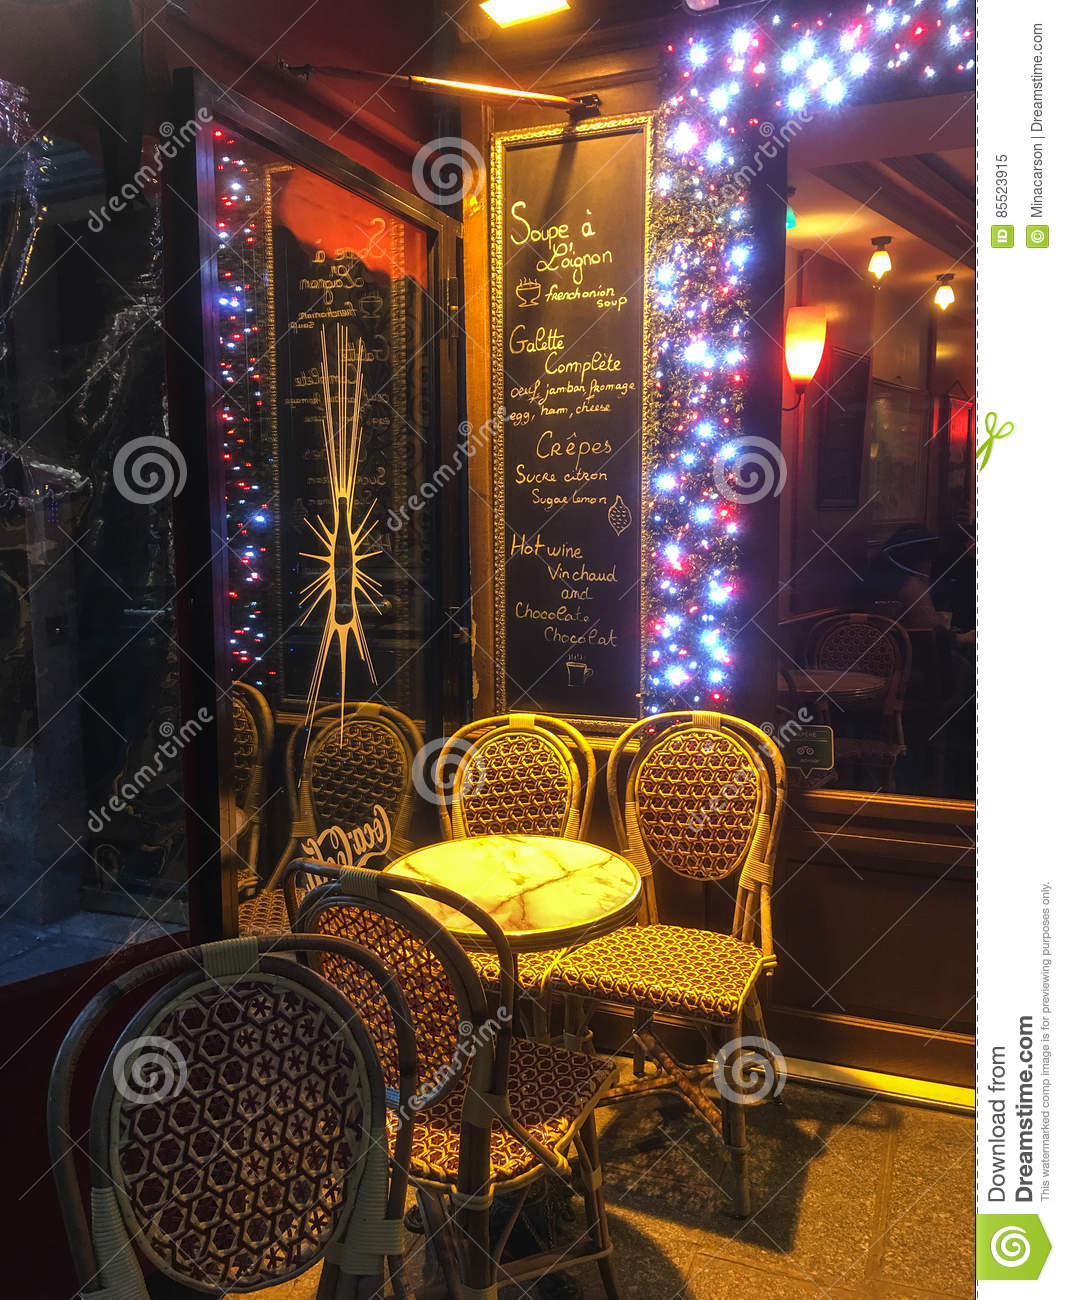 Paris Cafe Table On A Winter Night With Menu Chalked On A Board